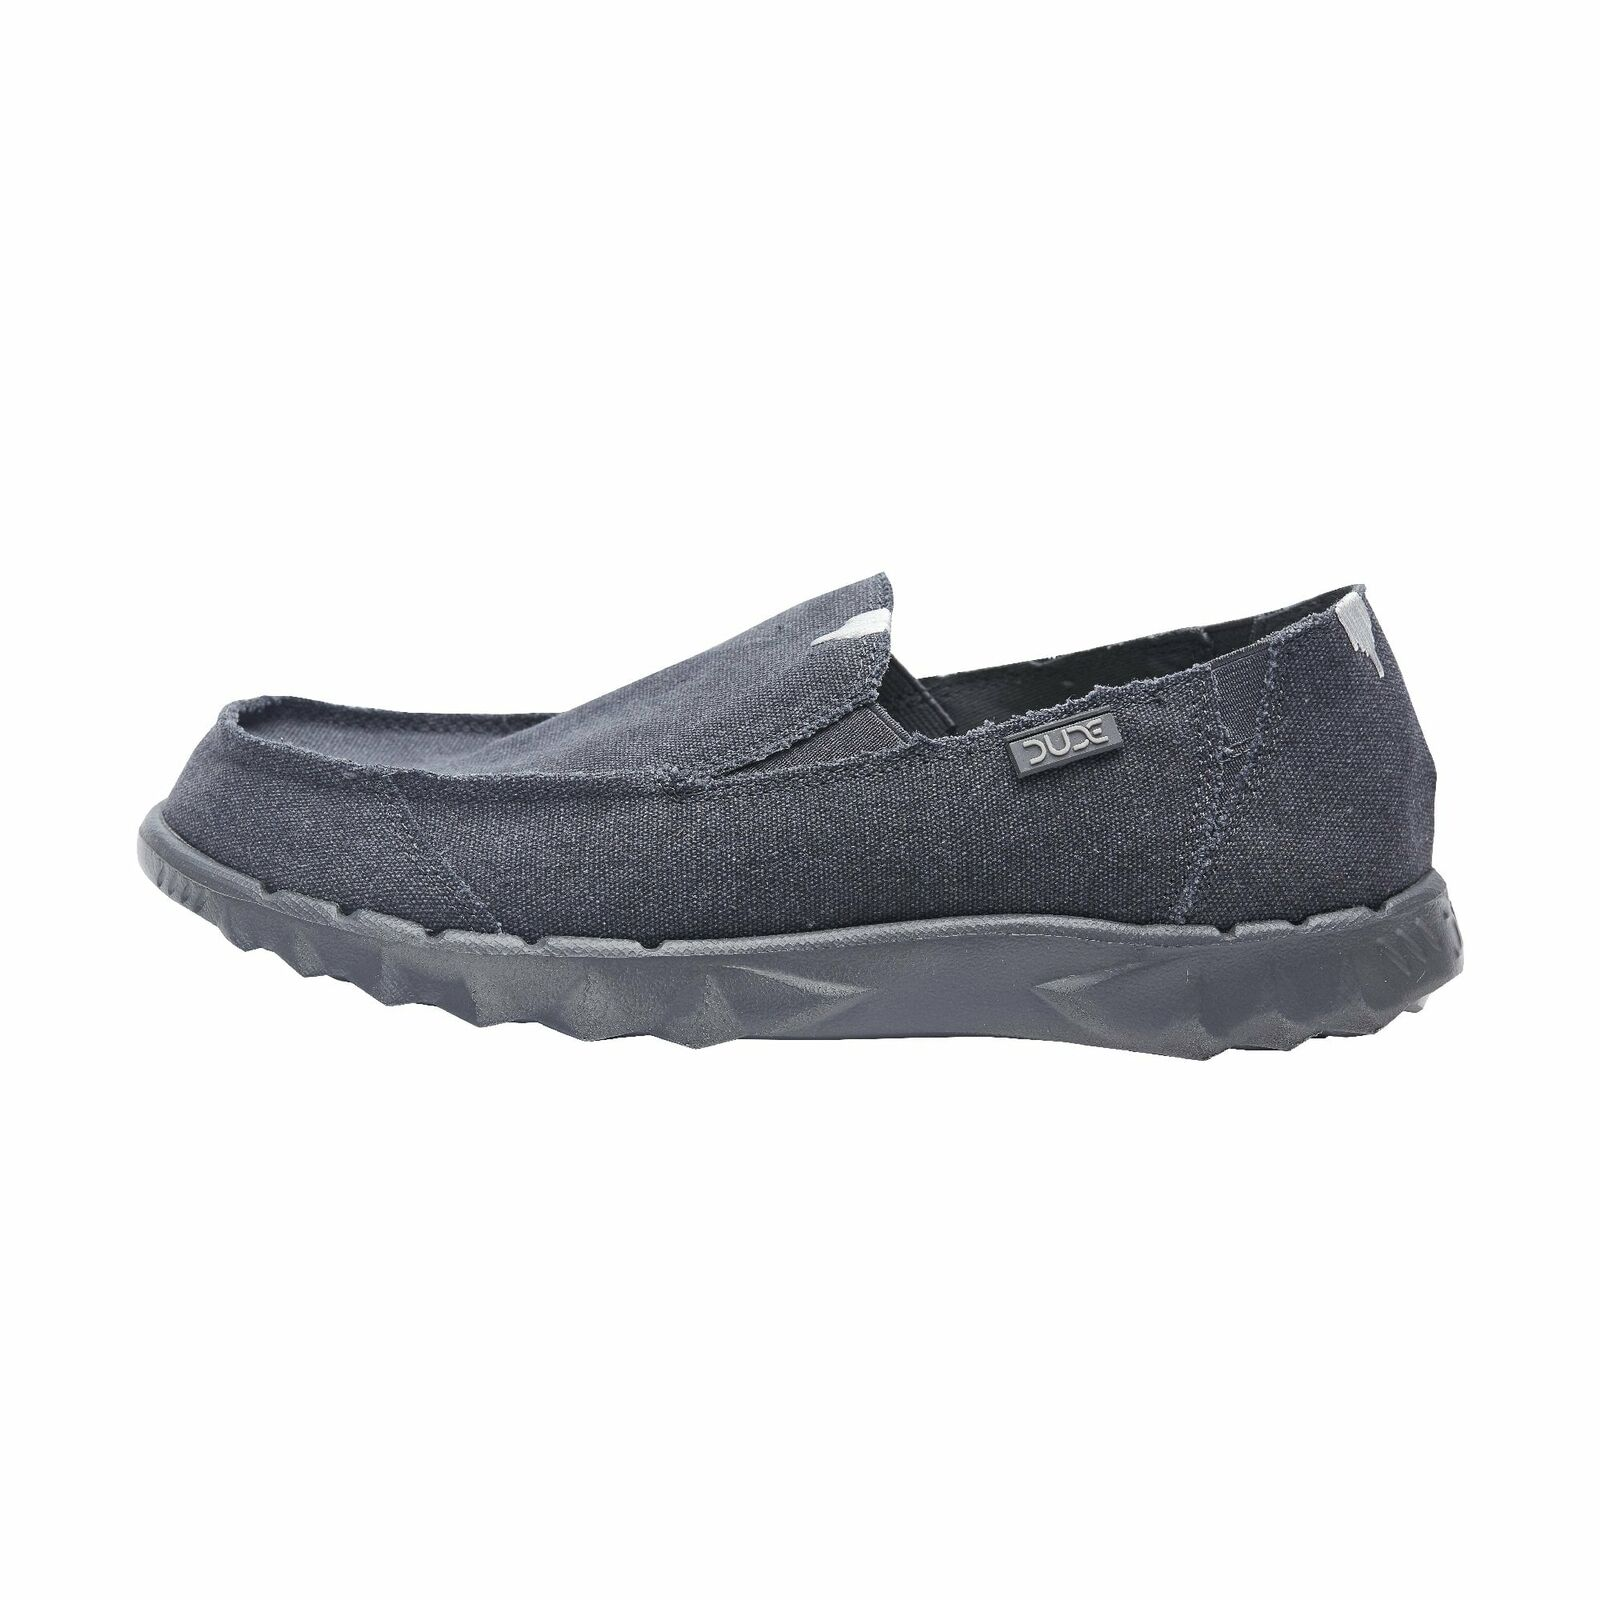 Hey Dude shoes Mens Farty Roughcut Night bluee Canvas Slip On Mule